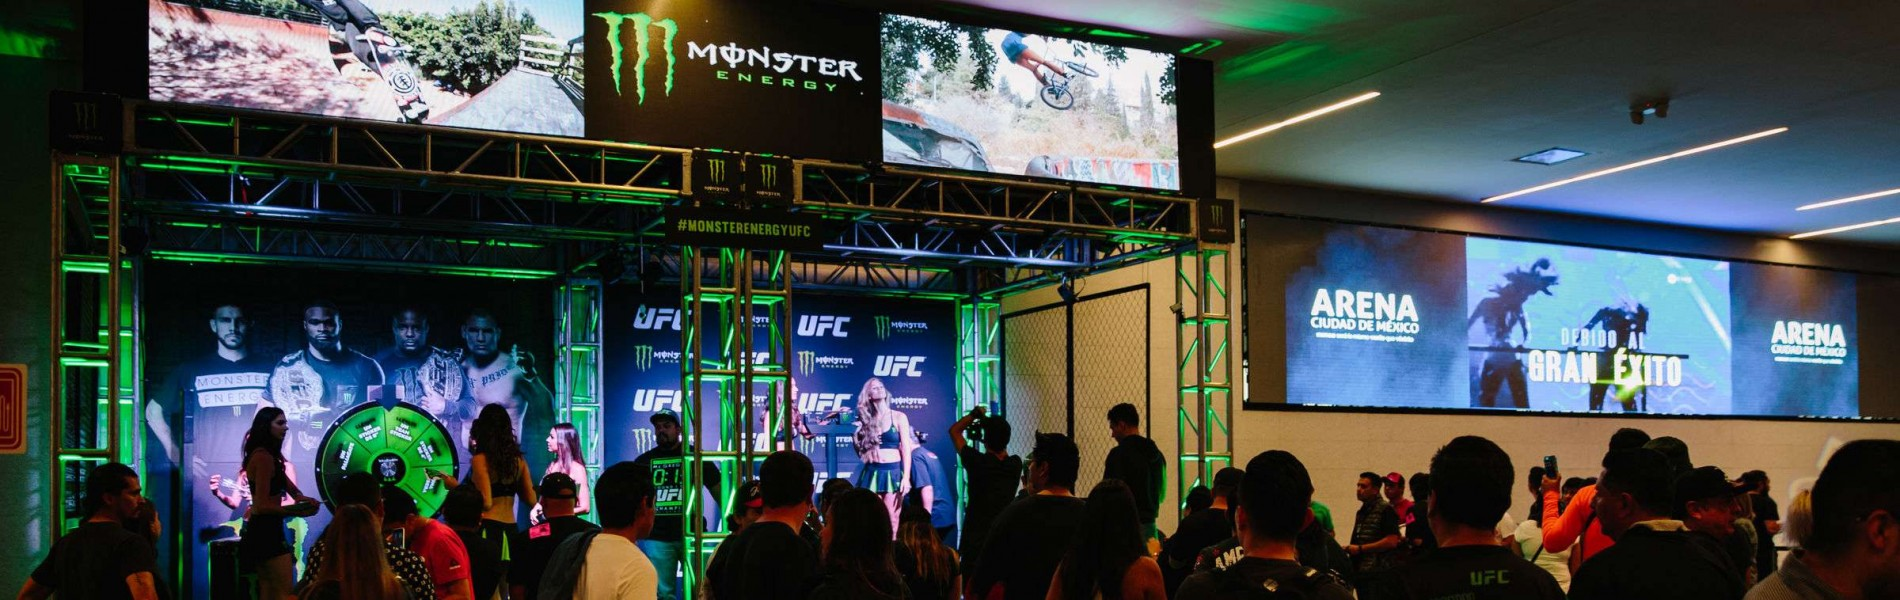 Monster Booth at UFC Mexico